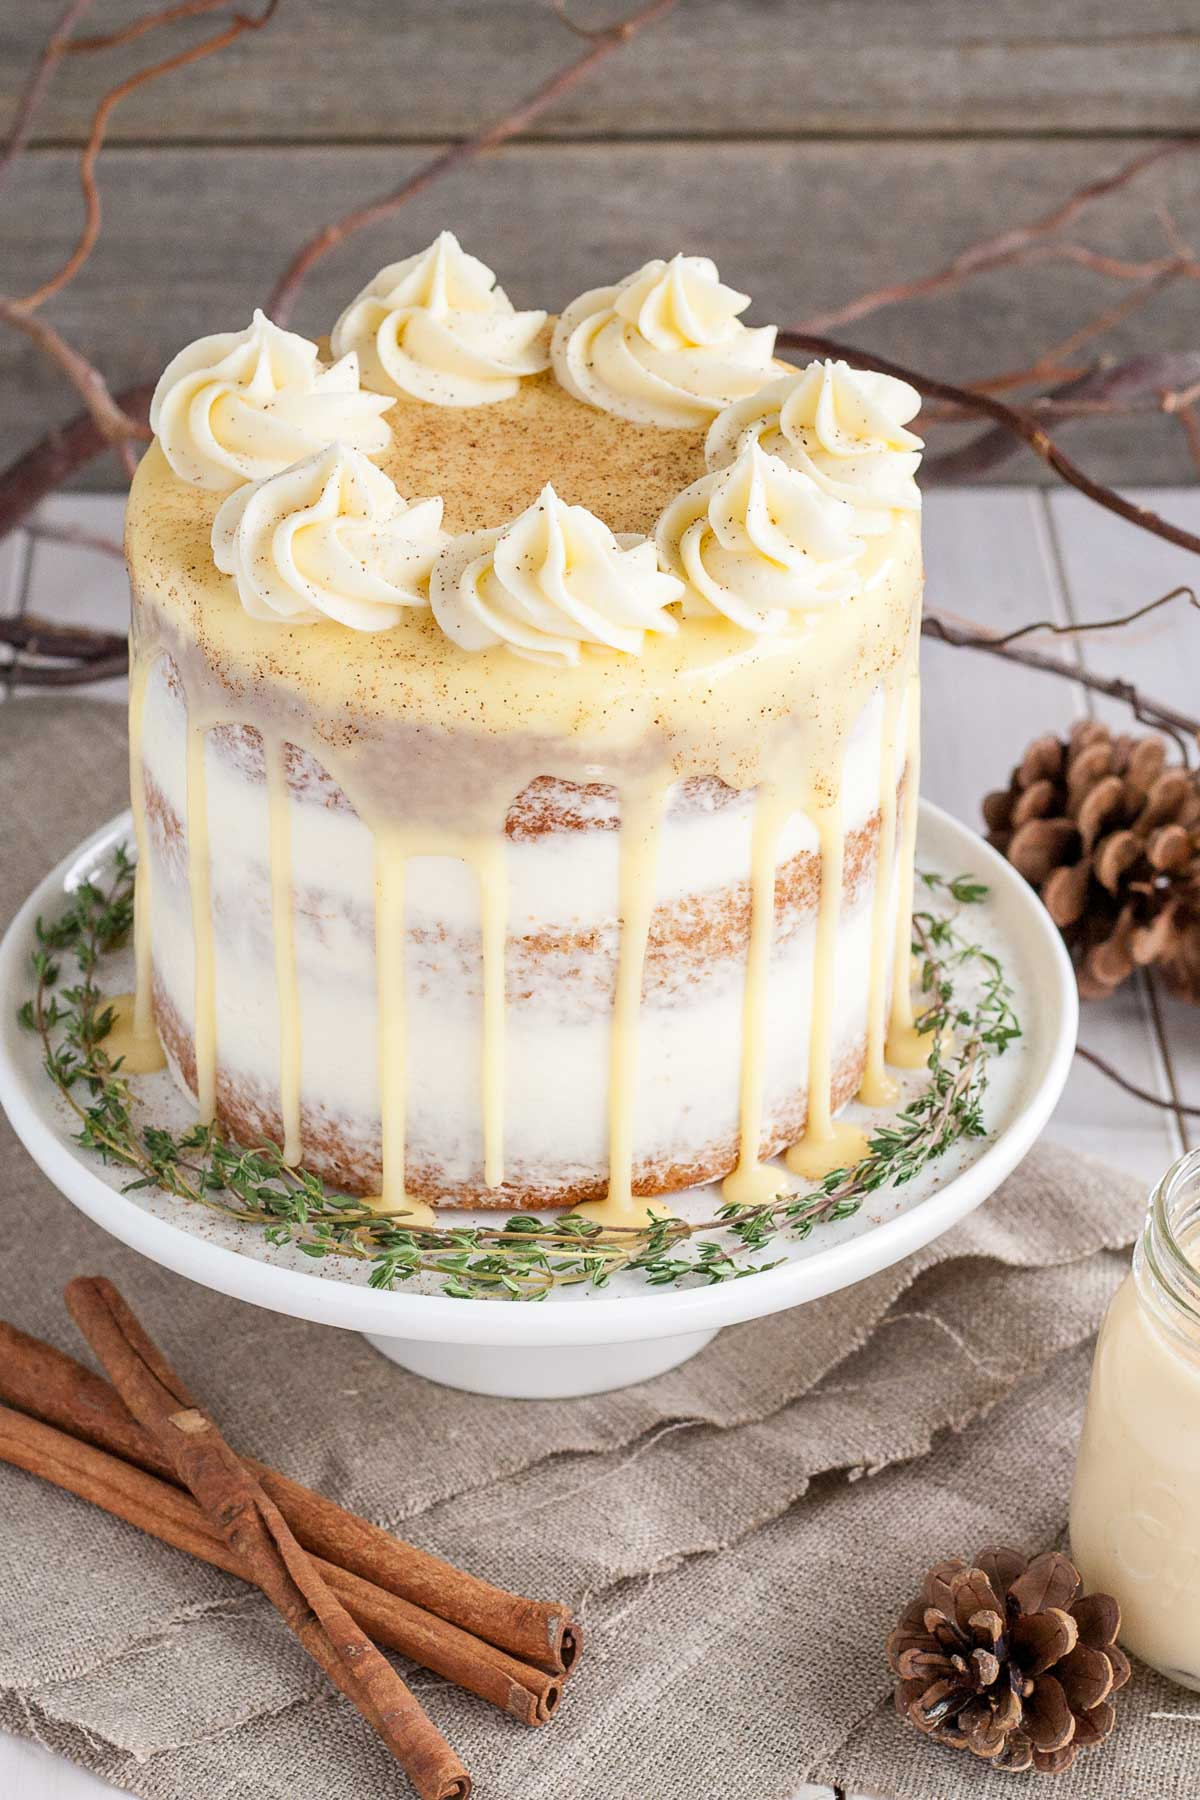 Eggnog cake with rum simple syrup and cream cheese frosting.